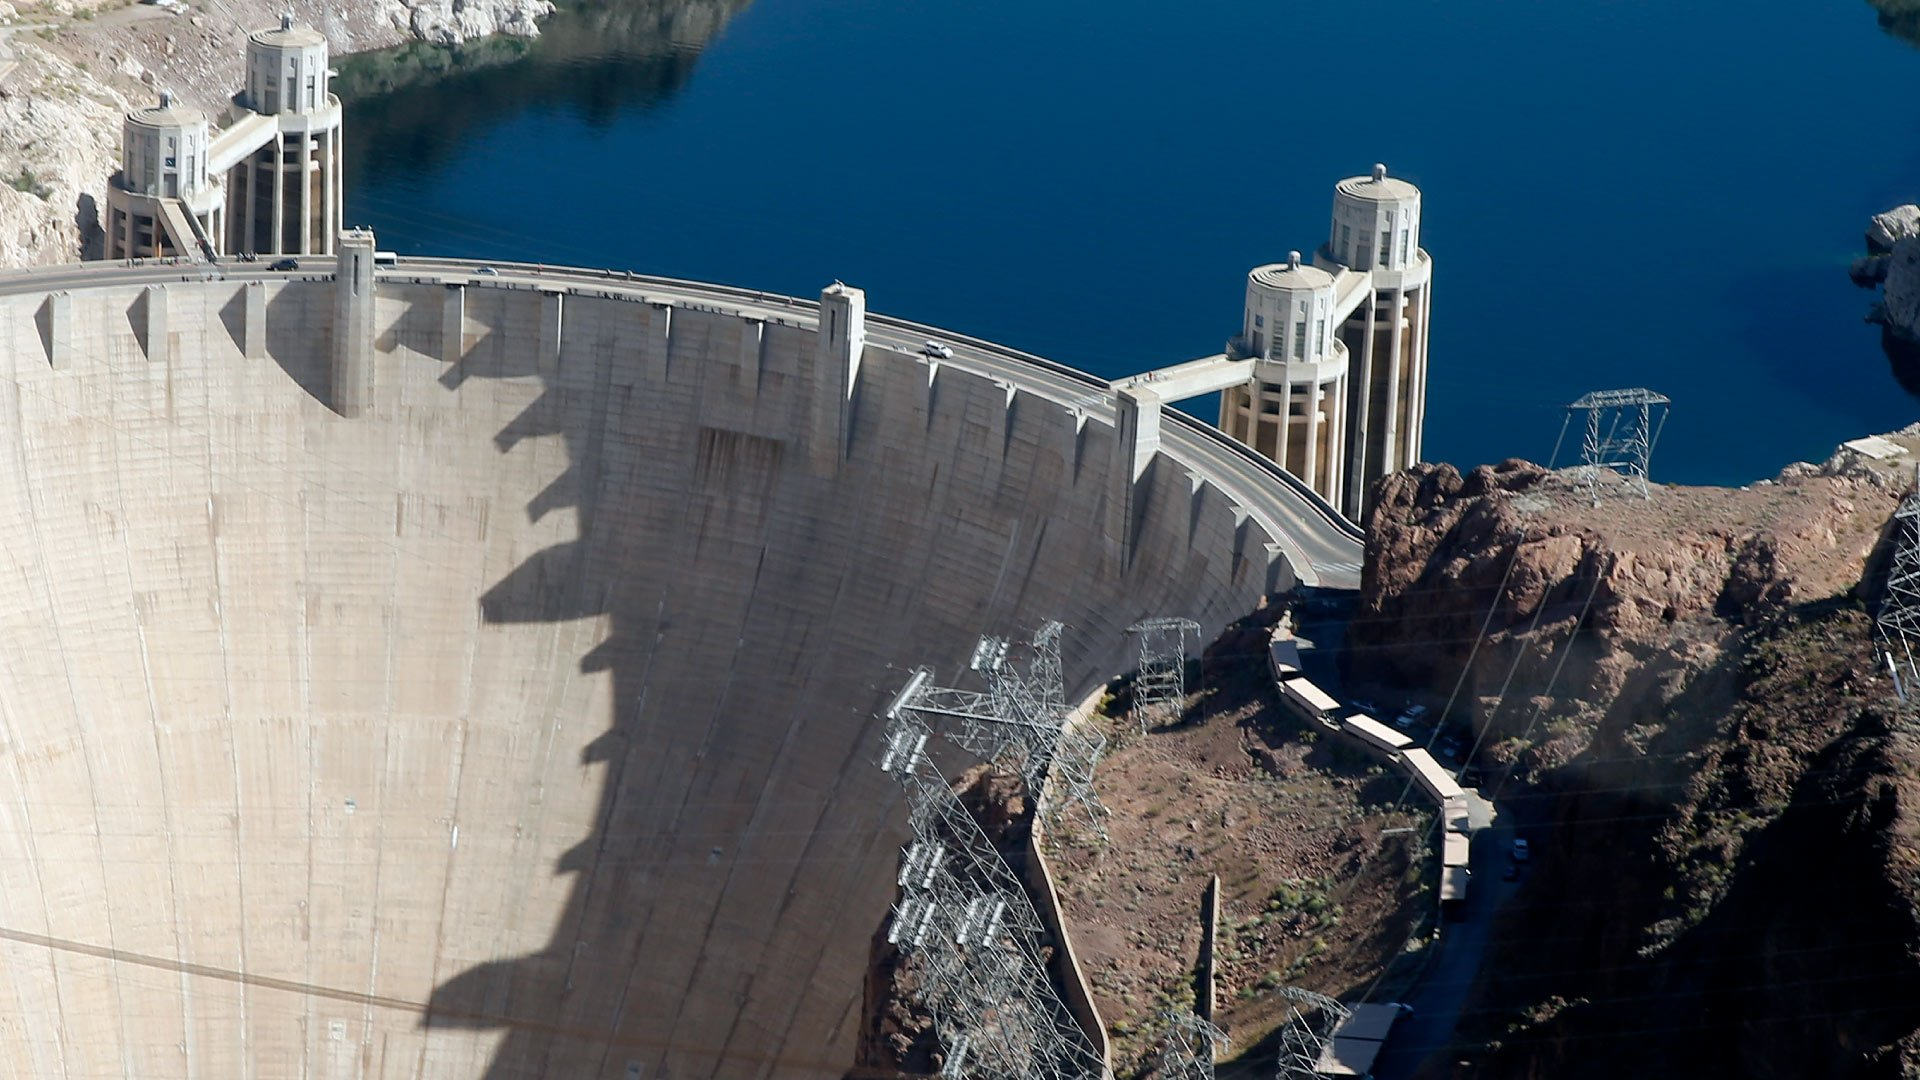 EC-130 helicopter flight by the Hoover Dam over Lake Mead